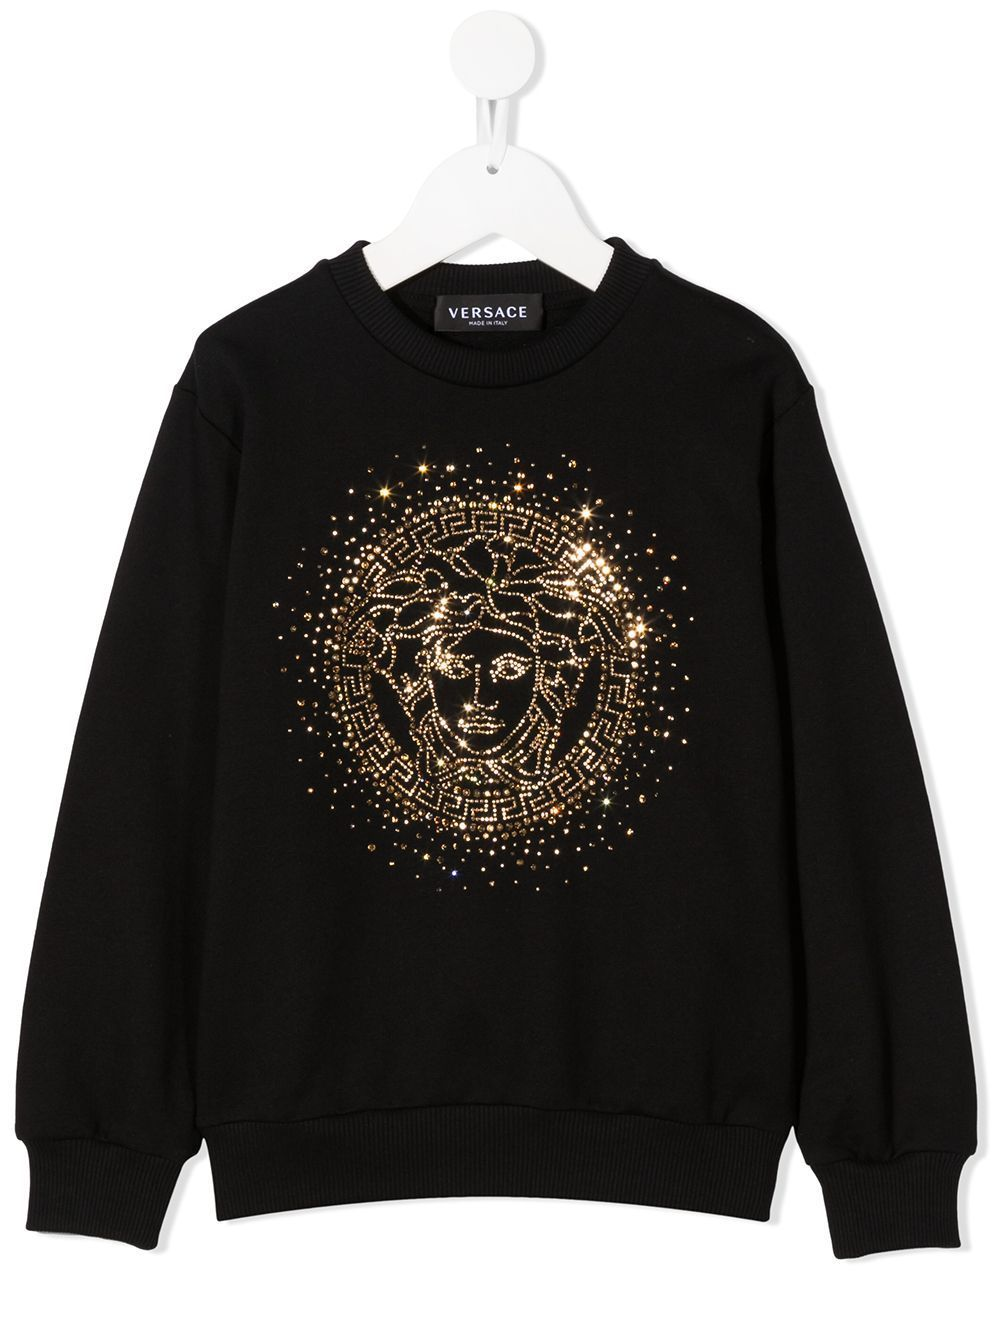 VERSACE KIDS Medusa Embellished Sweatshirt Black - Maison De Fashion